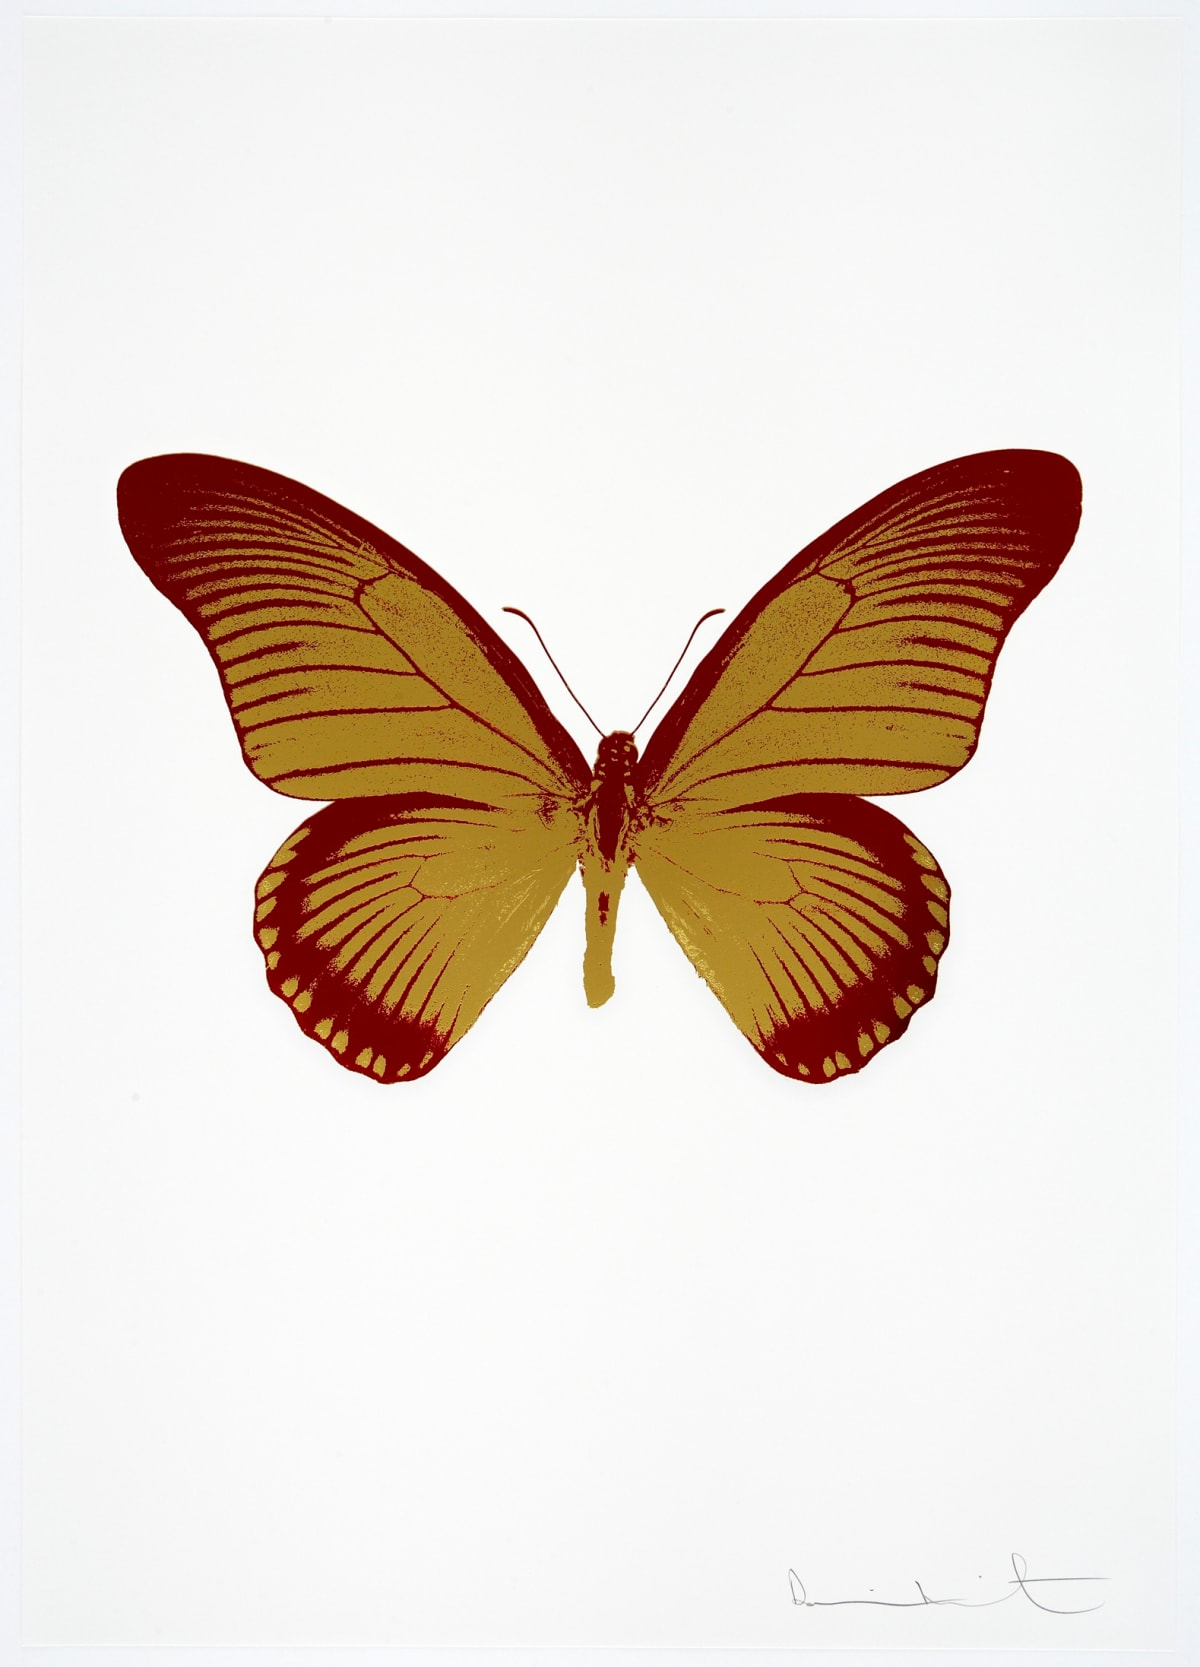 Damien Hirst The Souls IV - Oriental Gold/Chilli Red, 2010 2 colour foil block on 300gsm Arches 88 archival paper. Signed and numbered. Published by Paul Stolper and Other Criteria 72 x 51cm OC7995 / 1418-18 Edition of 15